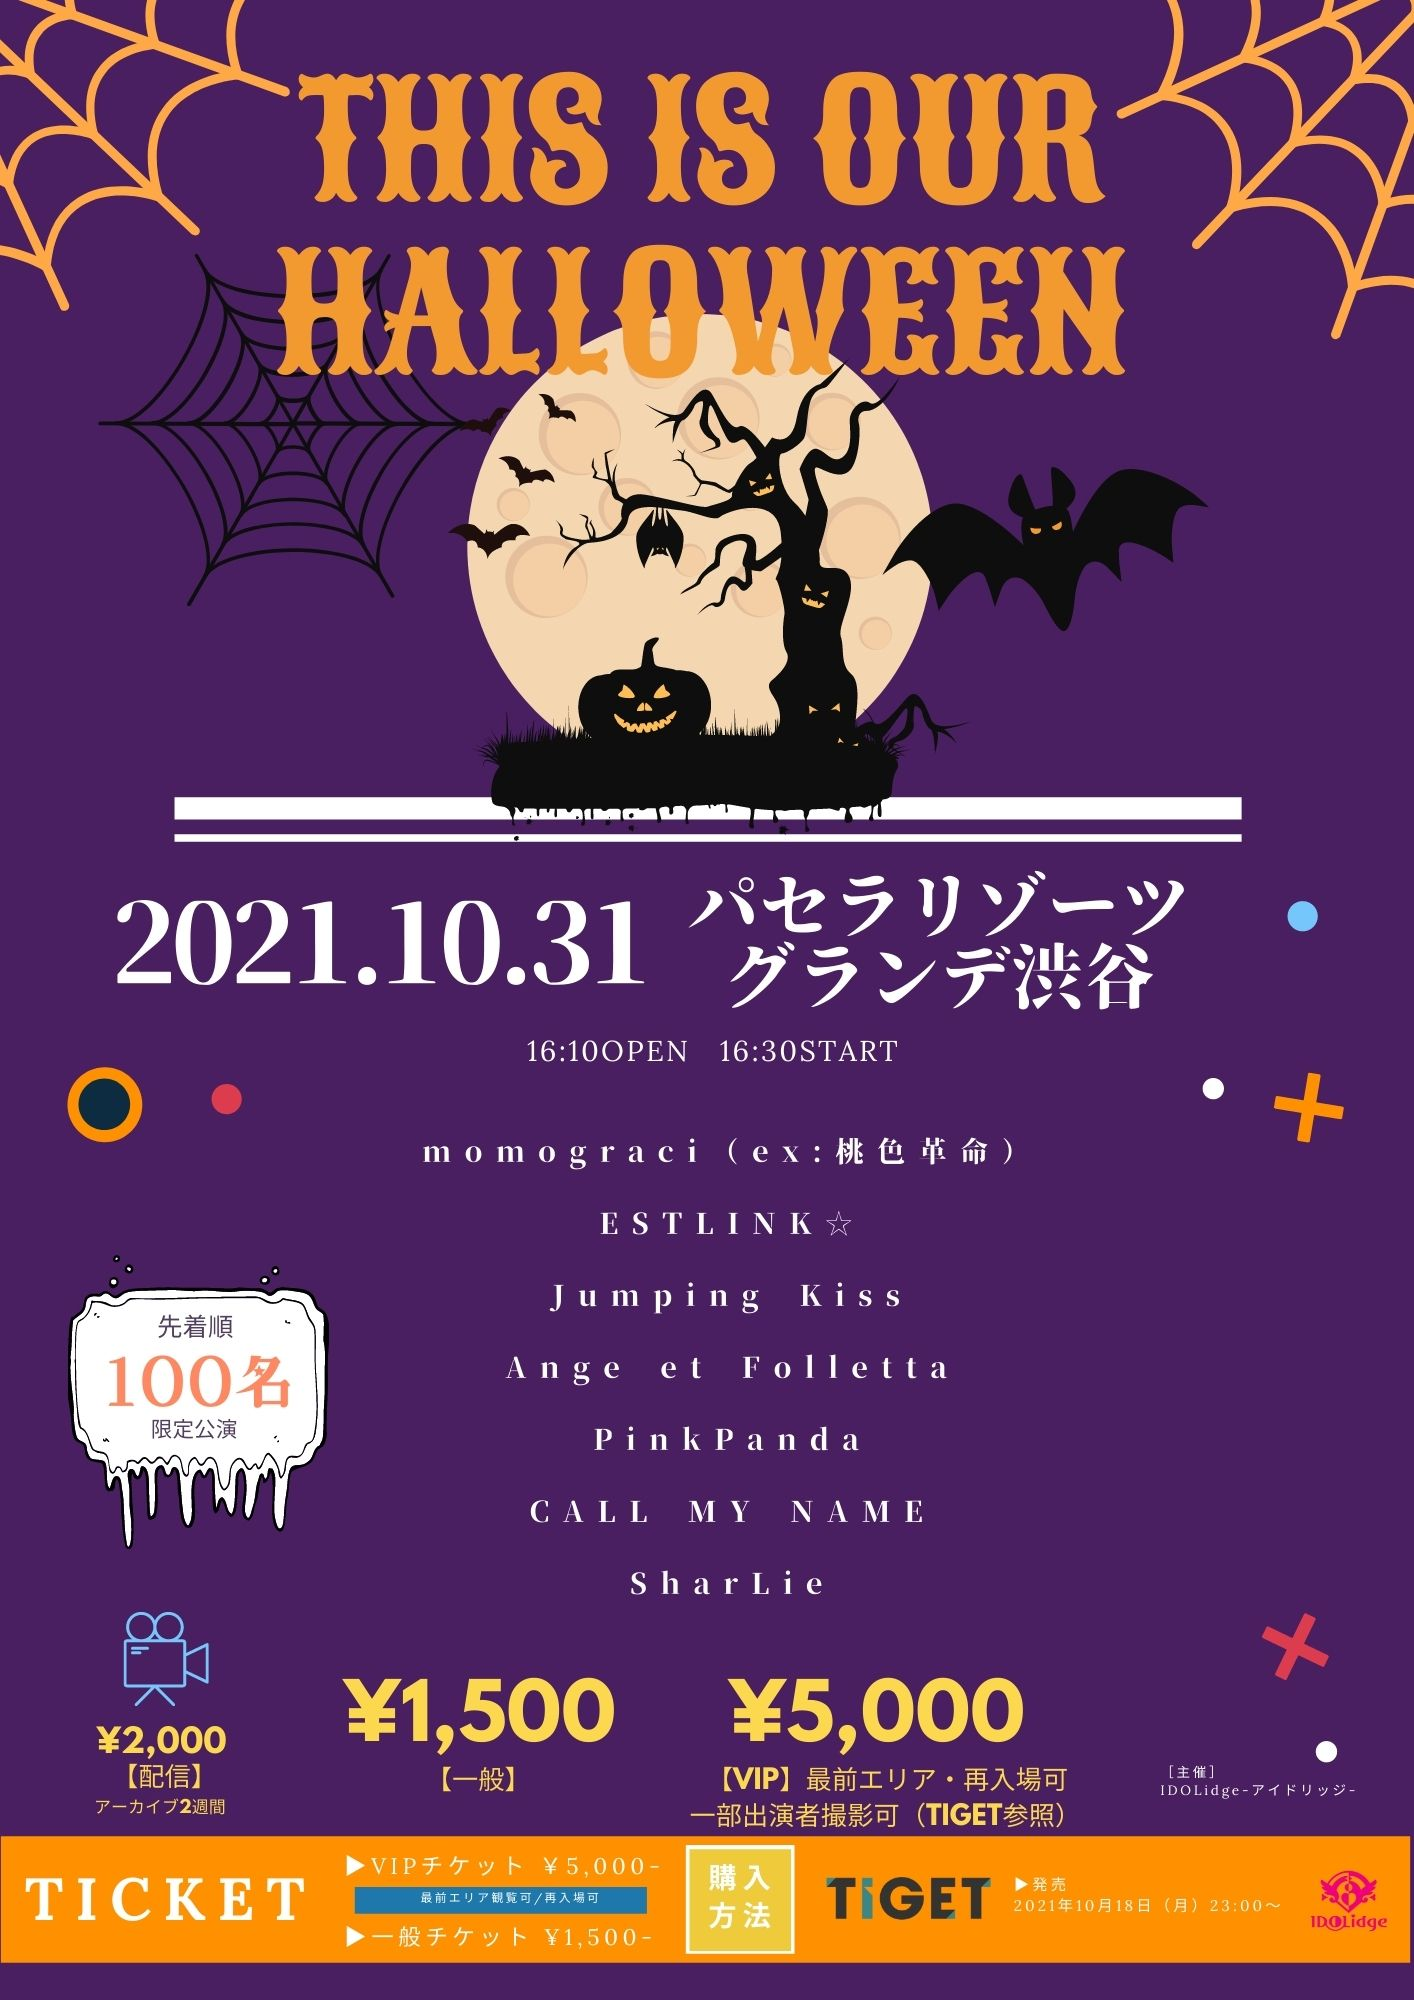 10/31 THIS is OUR HALLOWEEN